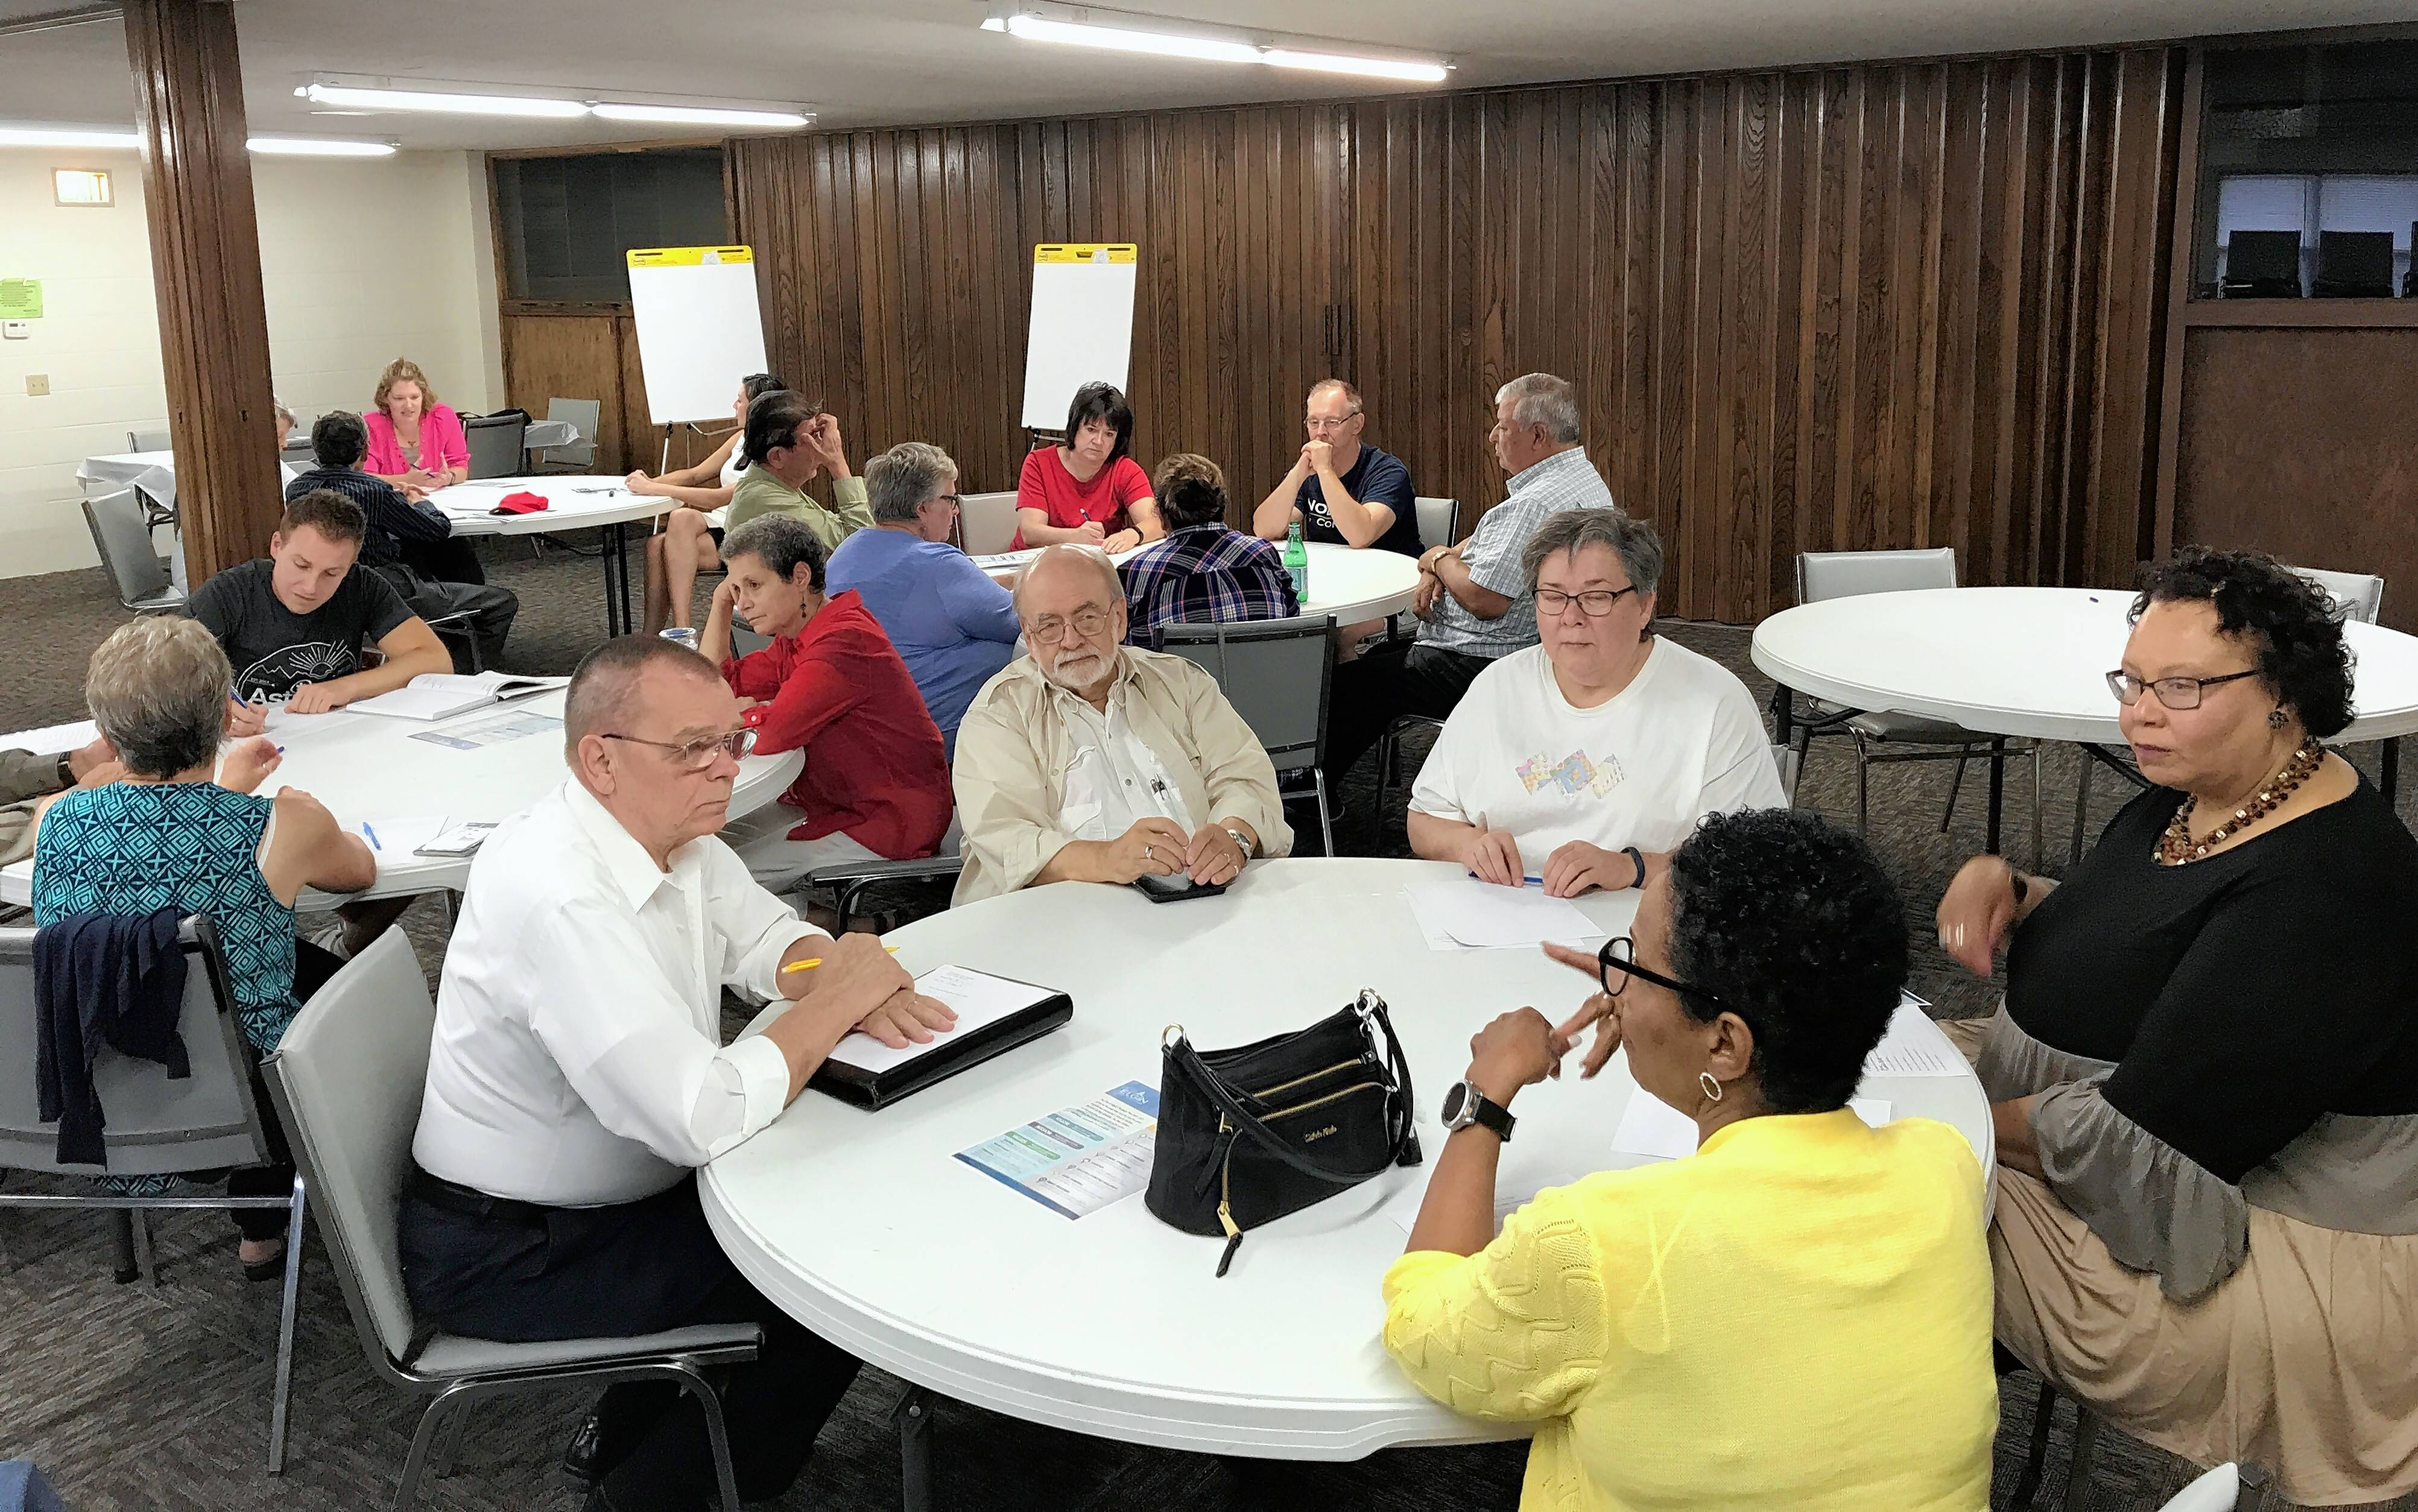 About 15 residents attended a community input meeting Monday night at First Christian Church of Elgin. More meetings take place Saturday and Aug. 21.